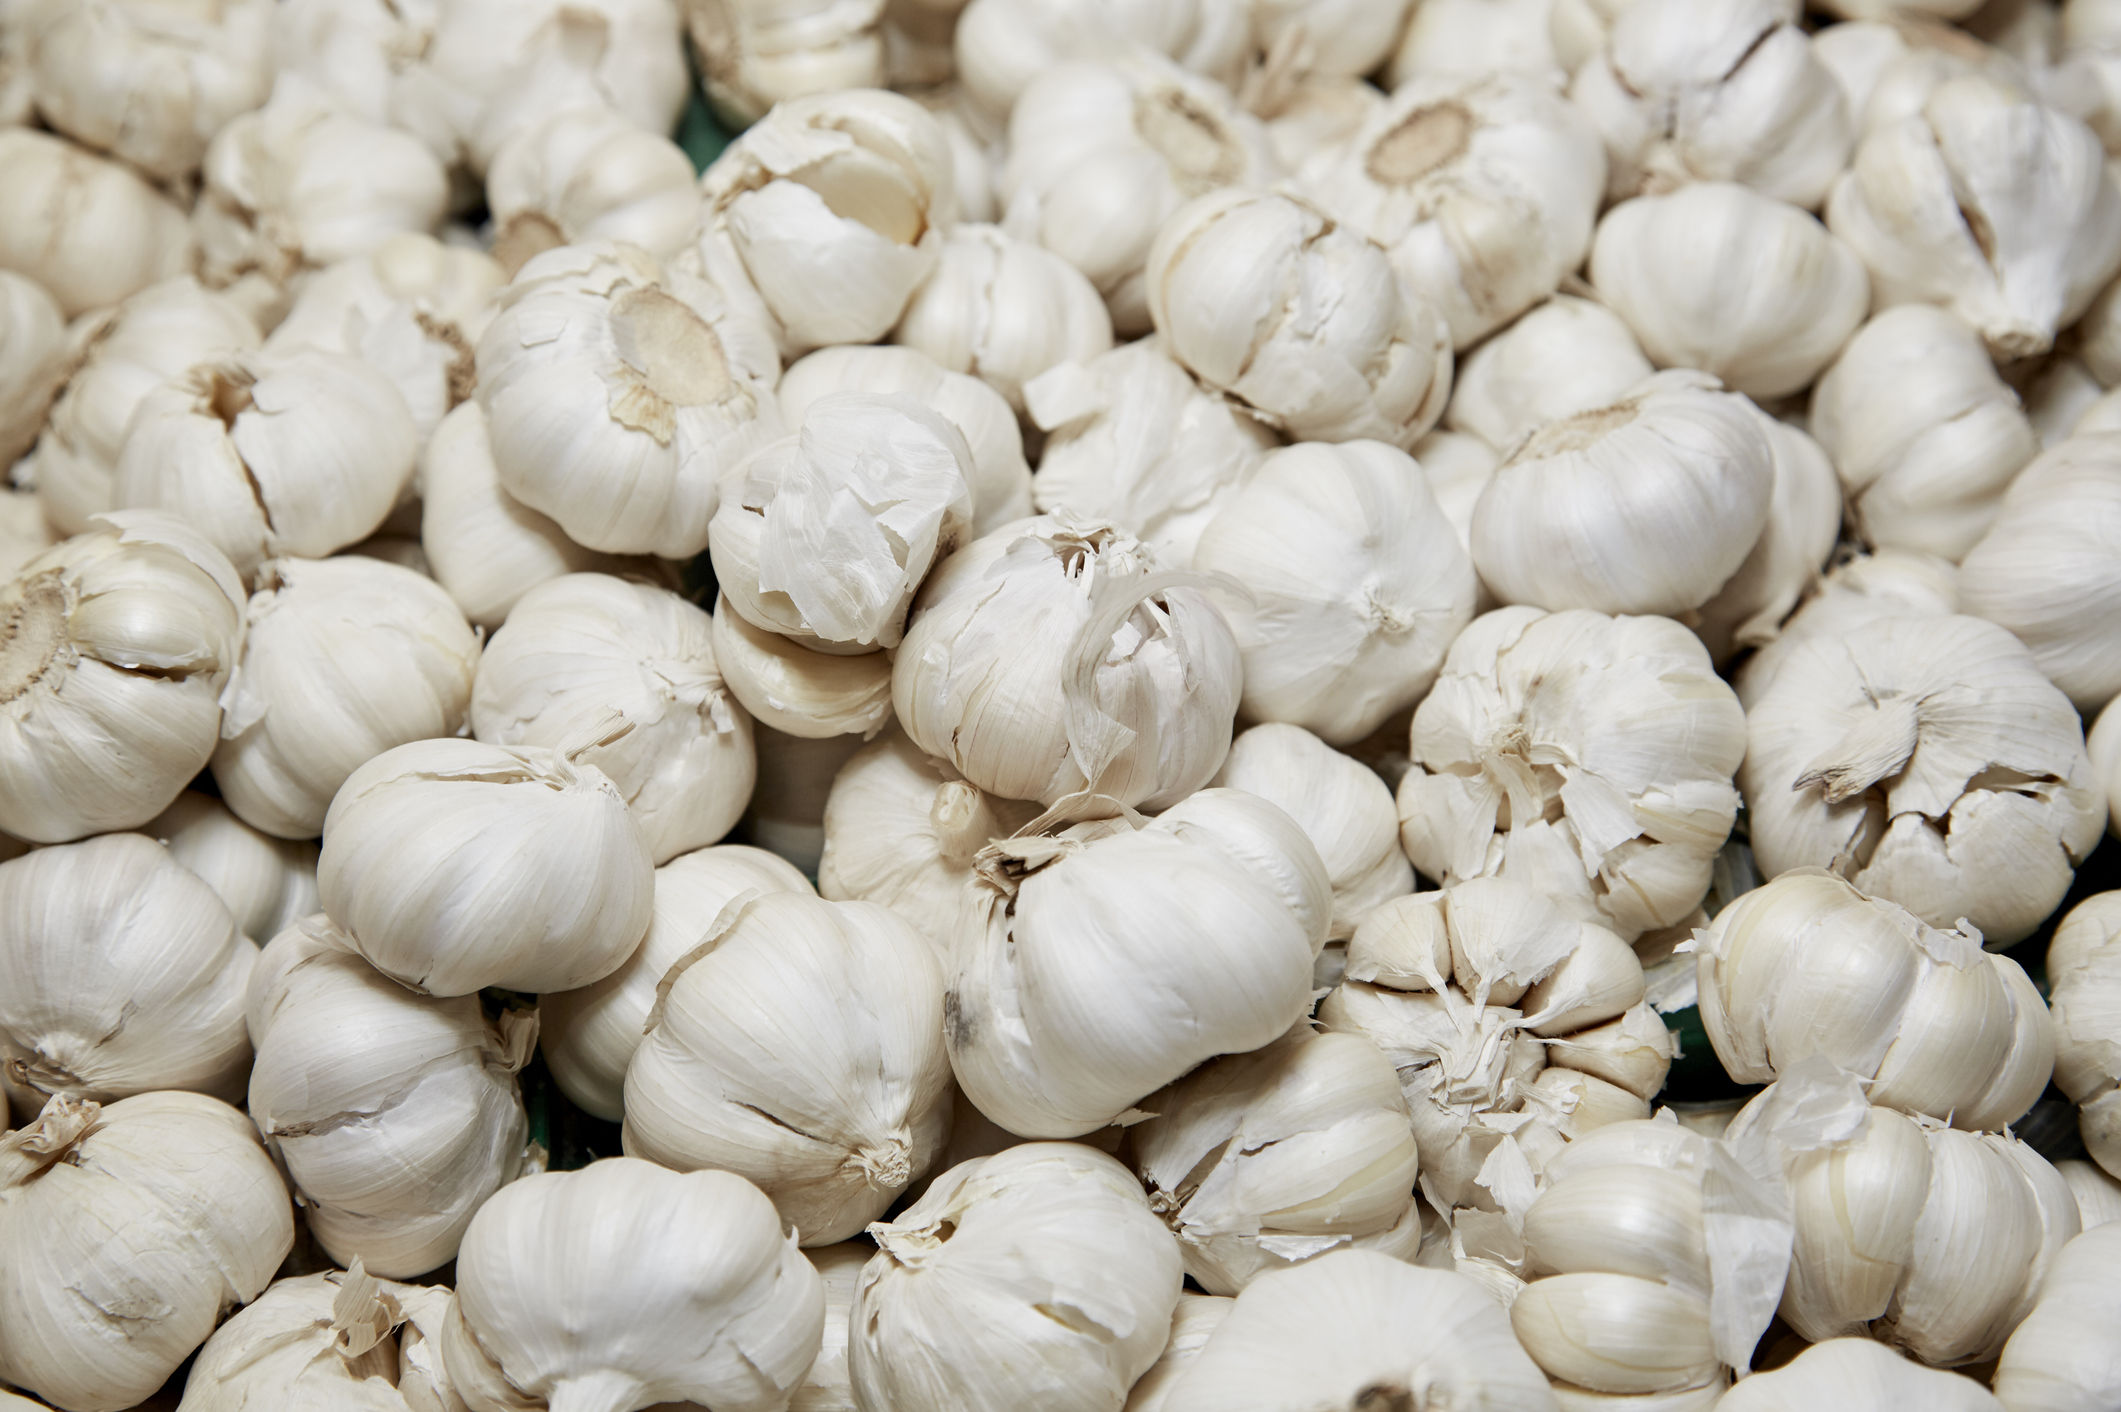 WATCH: Are You Eating Toxic Foreign Garlic?